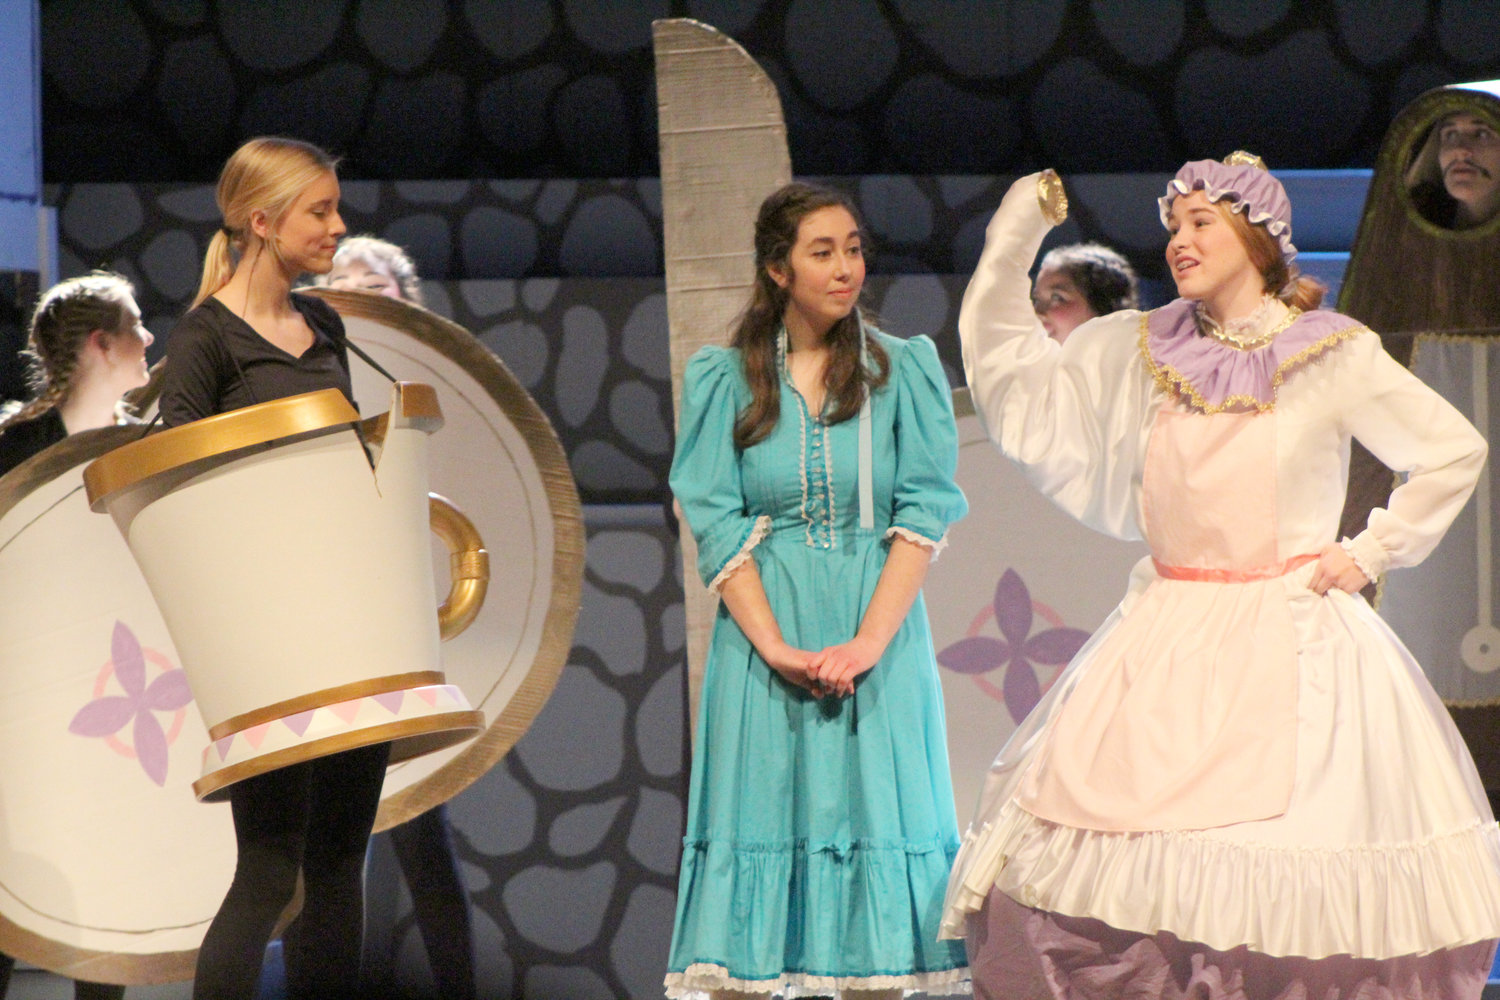 Hillcrest Academy presented the musical Beauty and the Beast Nov. 9 and 10.